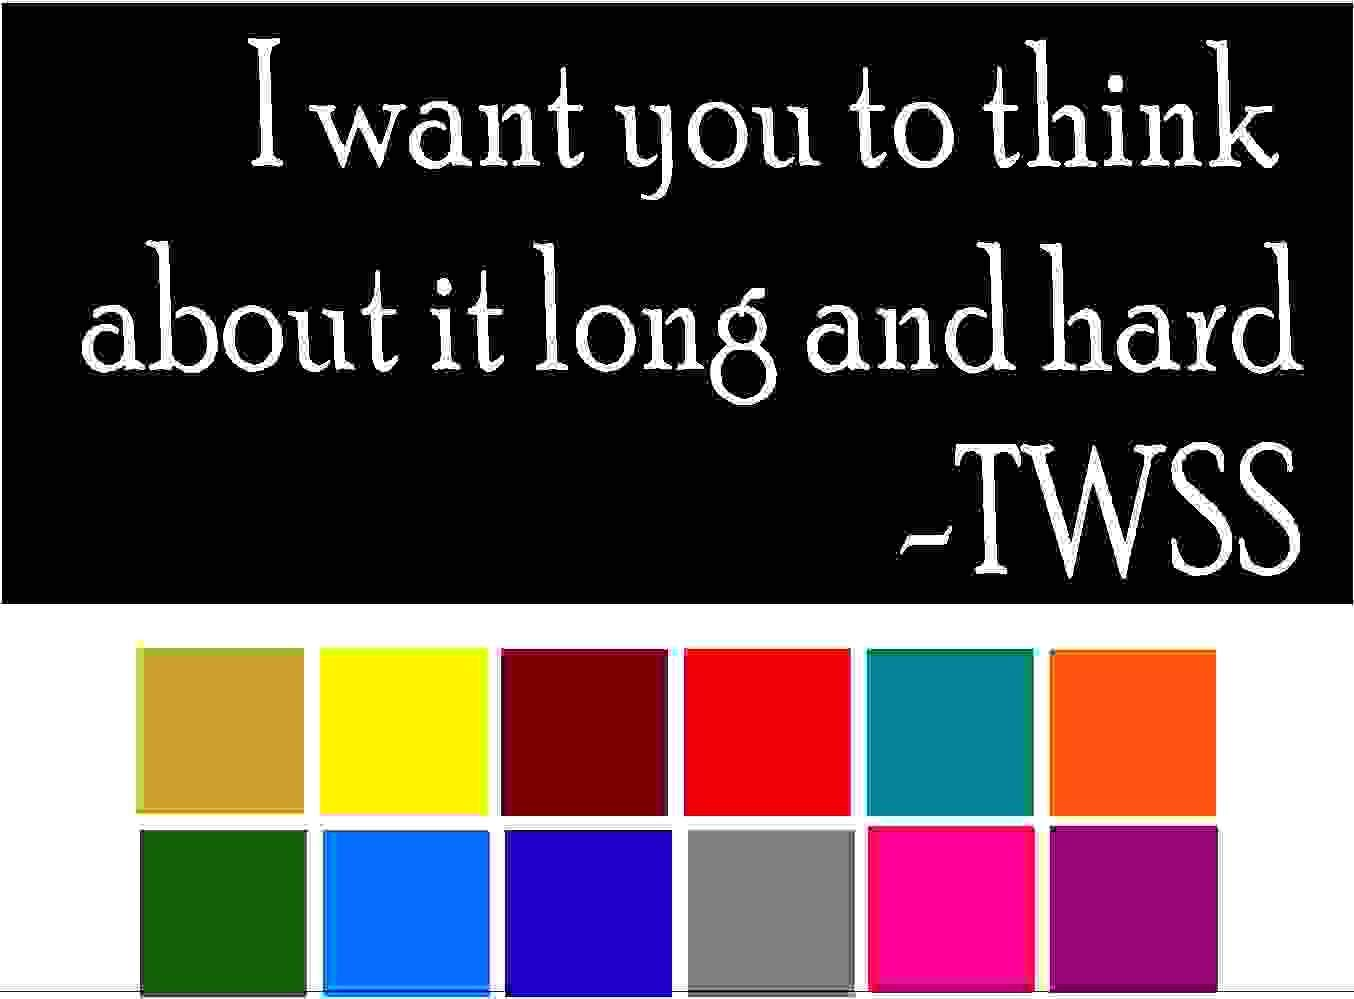 Saying Thats What She Said I want you to Think About it Long and Hard Car Window Tumblers Wall Decal Sticker Vinyl Laptops Cellphones Phones Tablets Ipads Helmets Motorcycles V and T Gifts